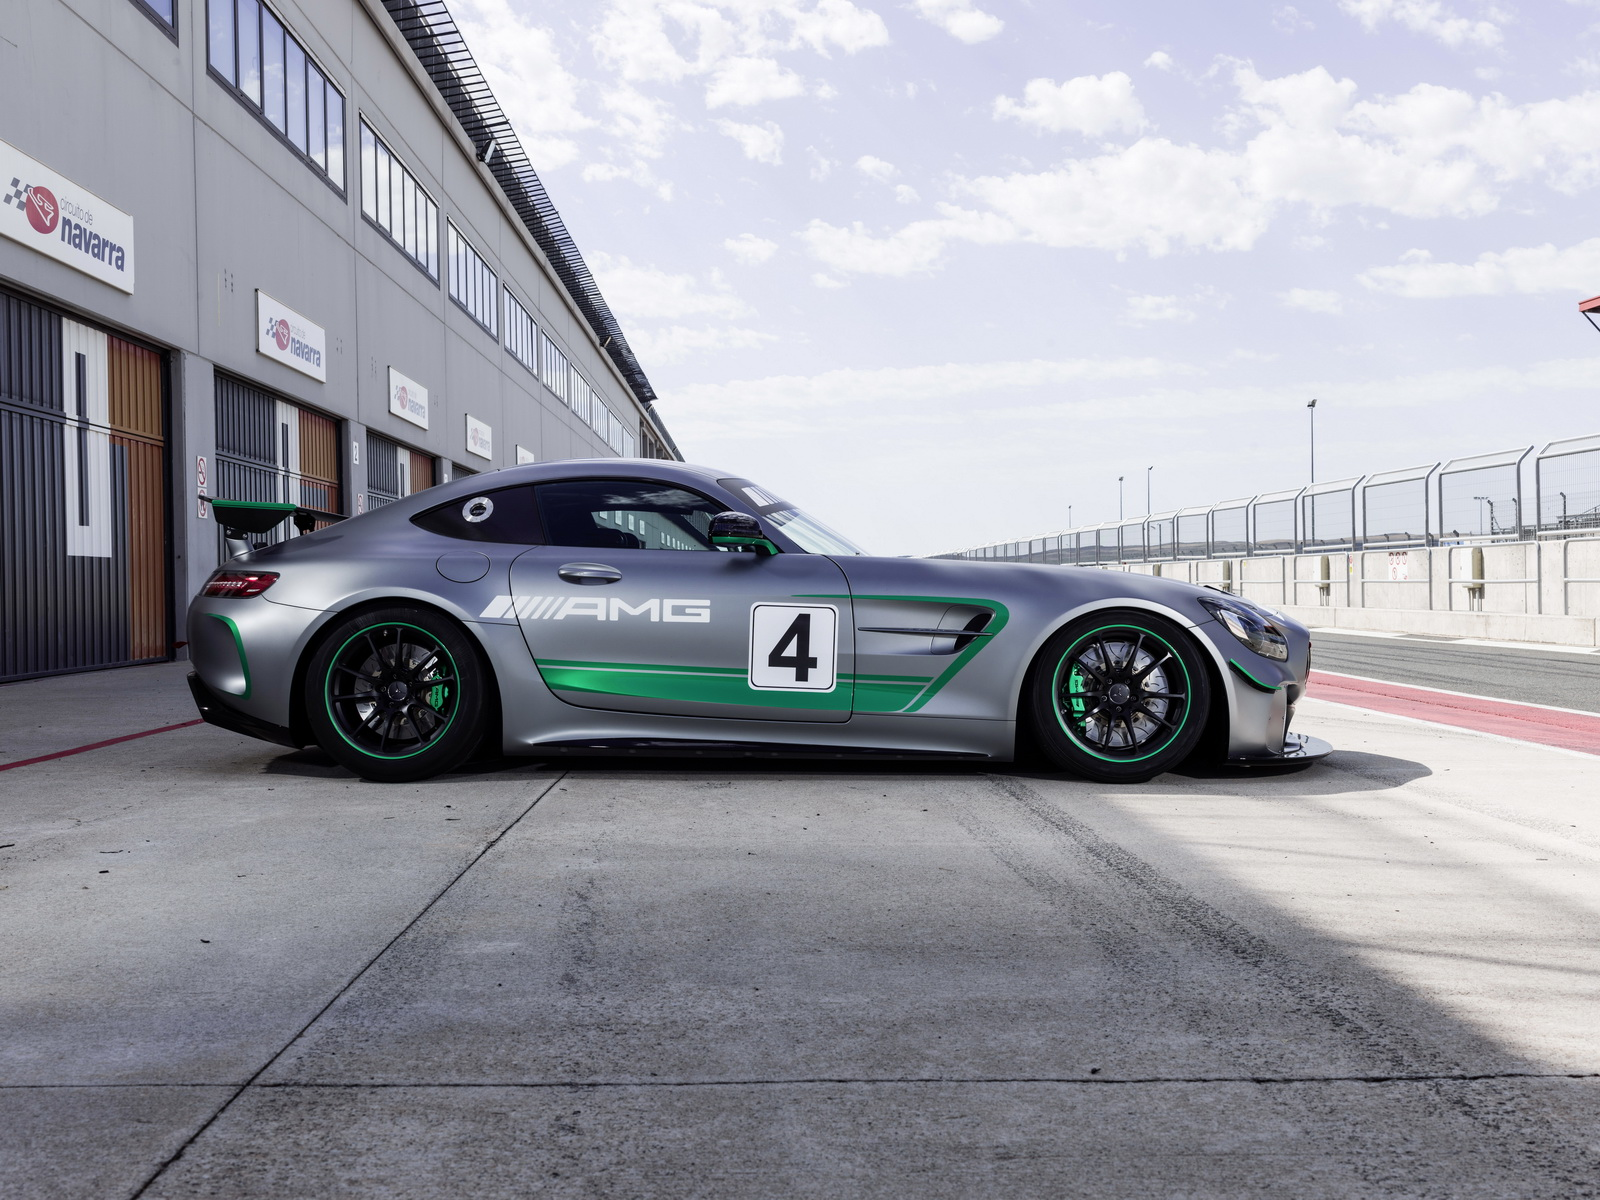 new mercedes amg gt4 race car reporting for duty at spa francorchamps. Black Bedroom Furniture Sets. Home Design Ideas